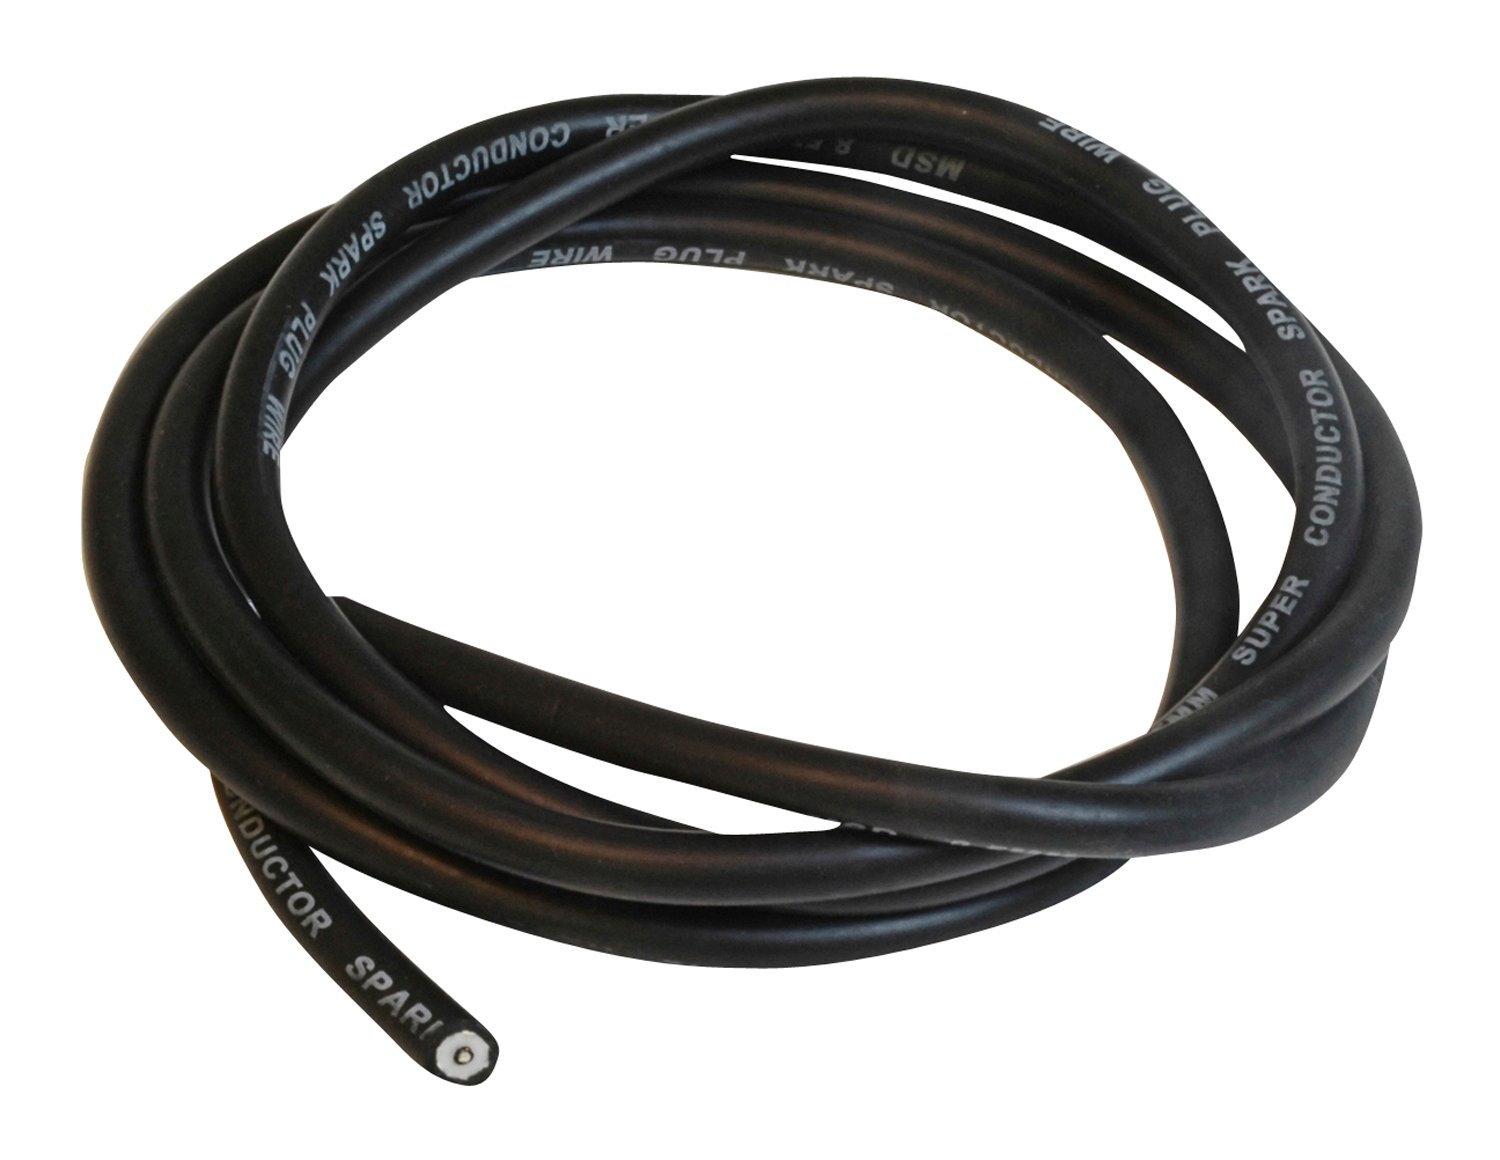 34043 - Super Conductor Bulk Wire, Black 100' Bulk Image